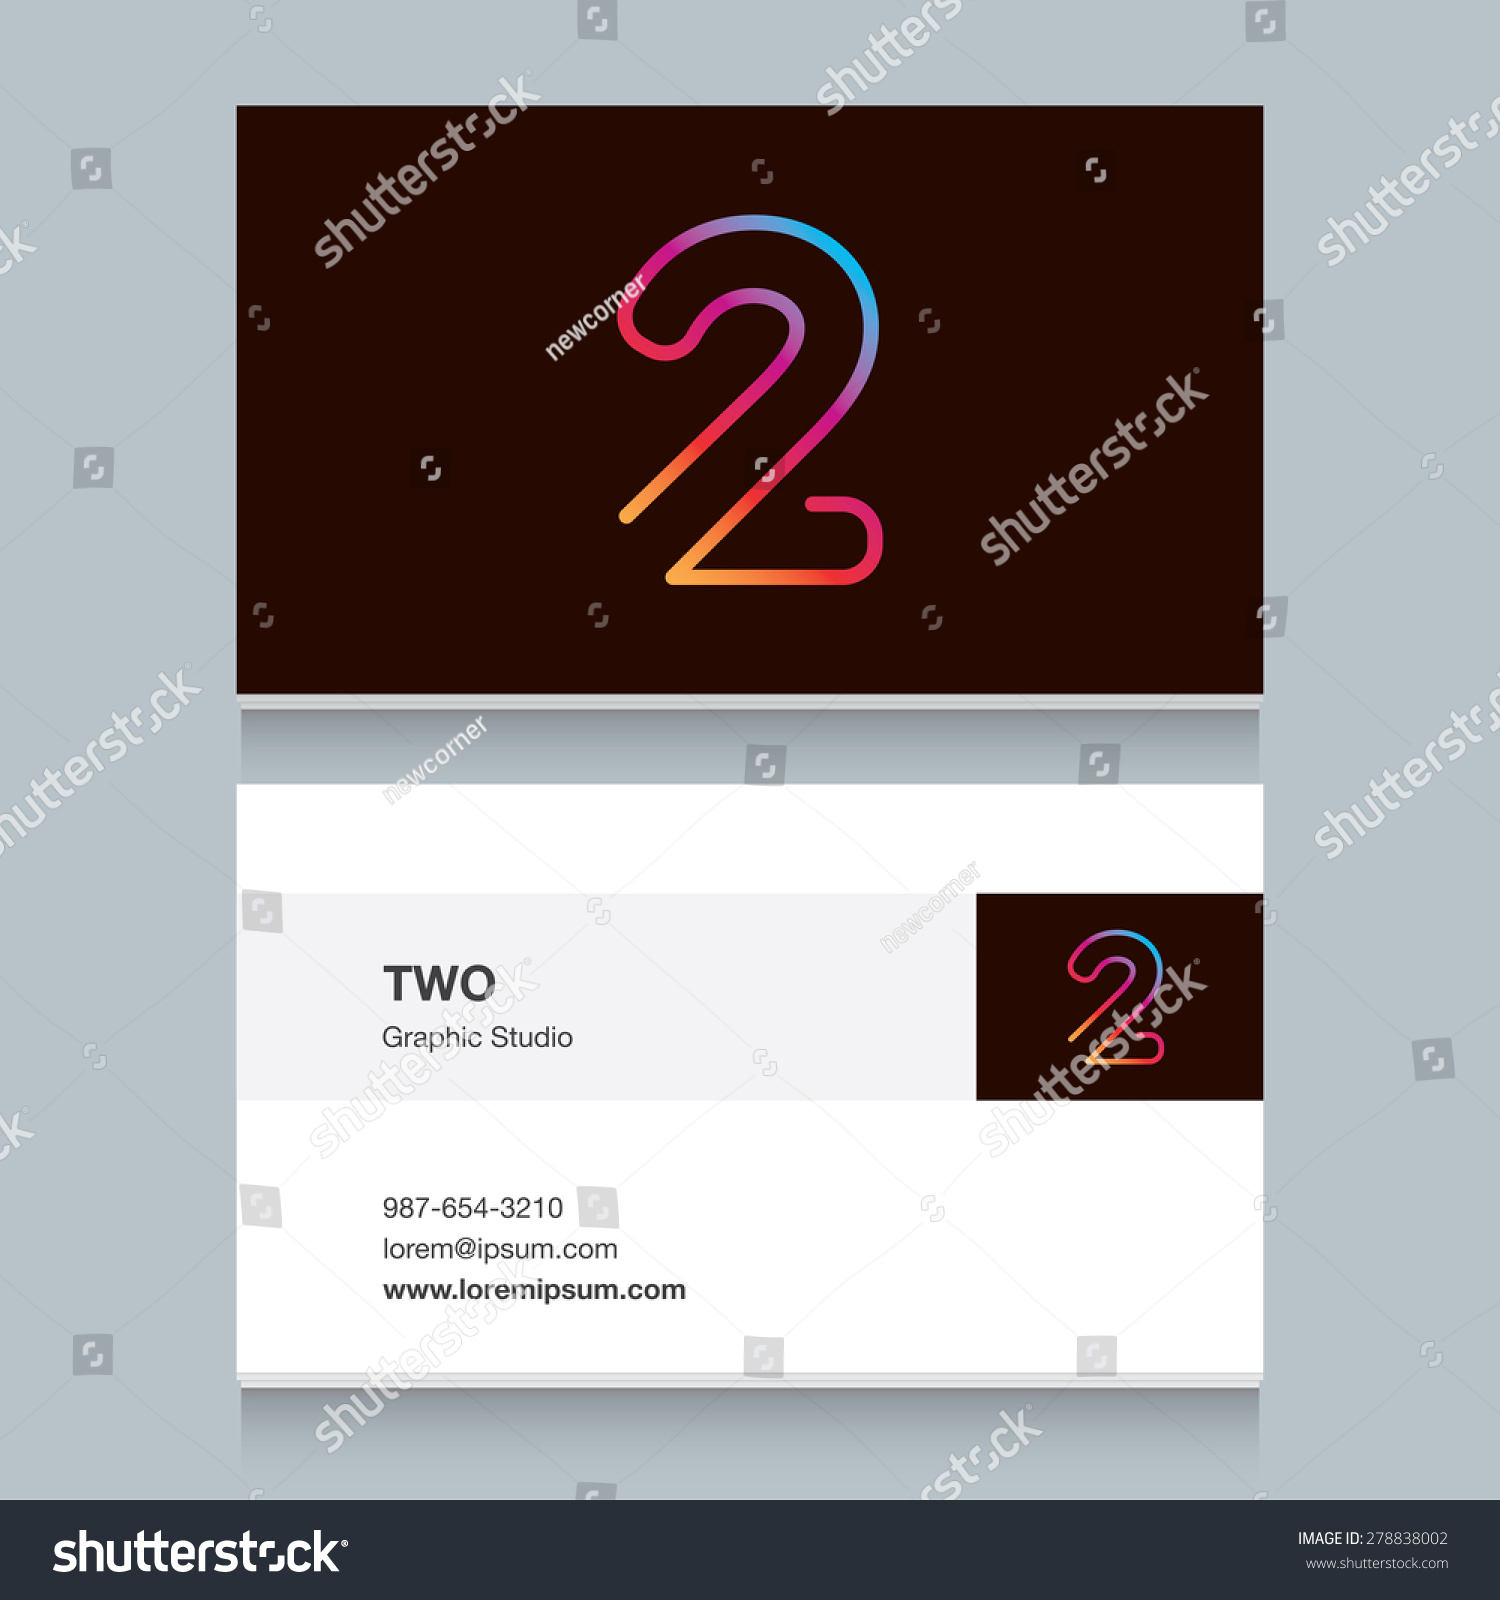 Logo number two 2 business card stock vector 278838002 shutterstock logo number two 2 with business card template vector design fully editable magicingreecefo Image collections